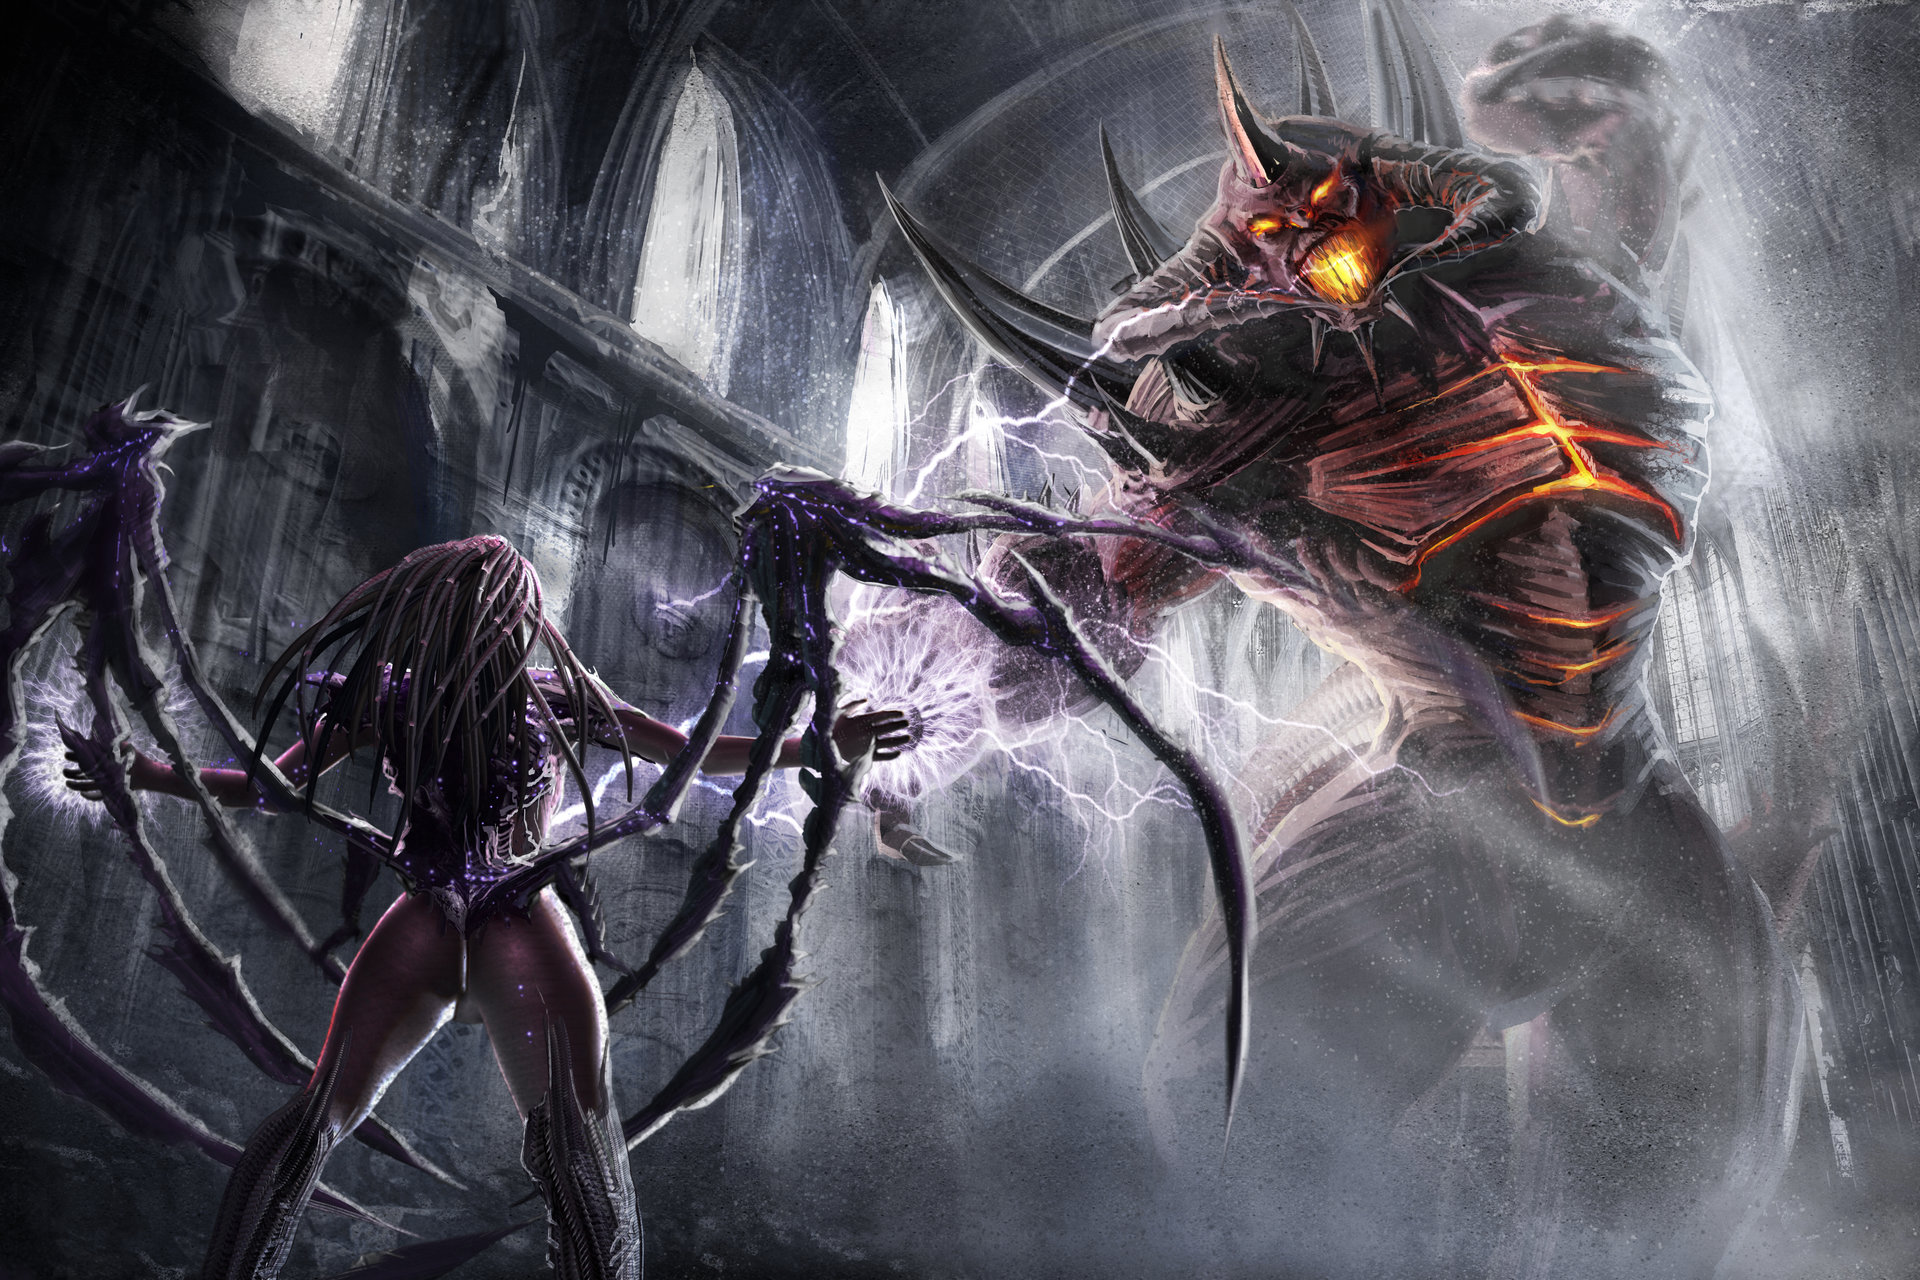 Queen of blades VS Lord of terror